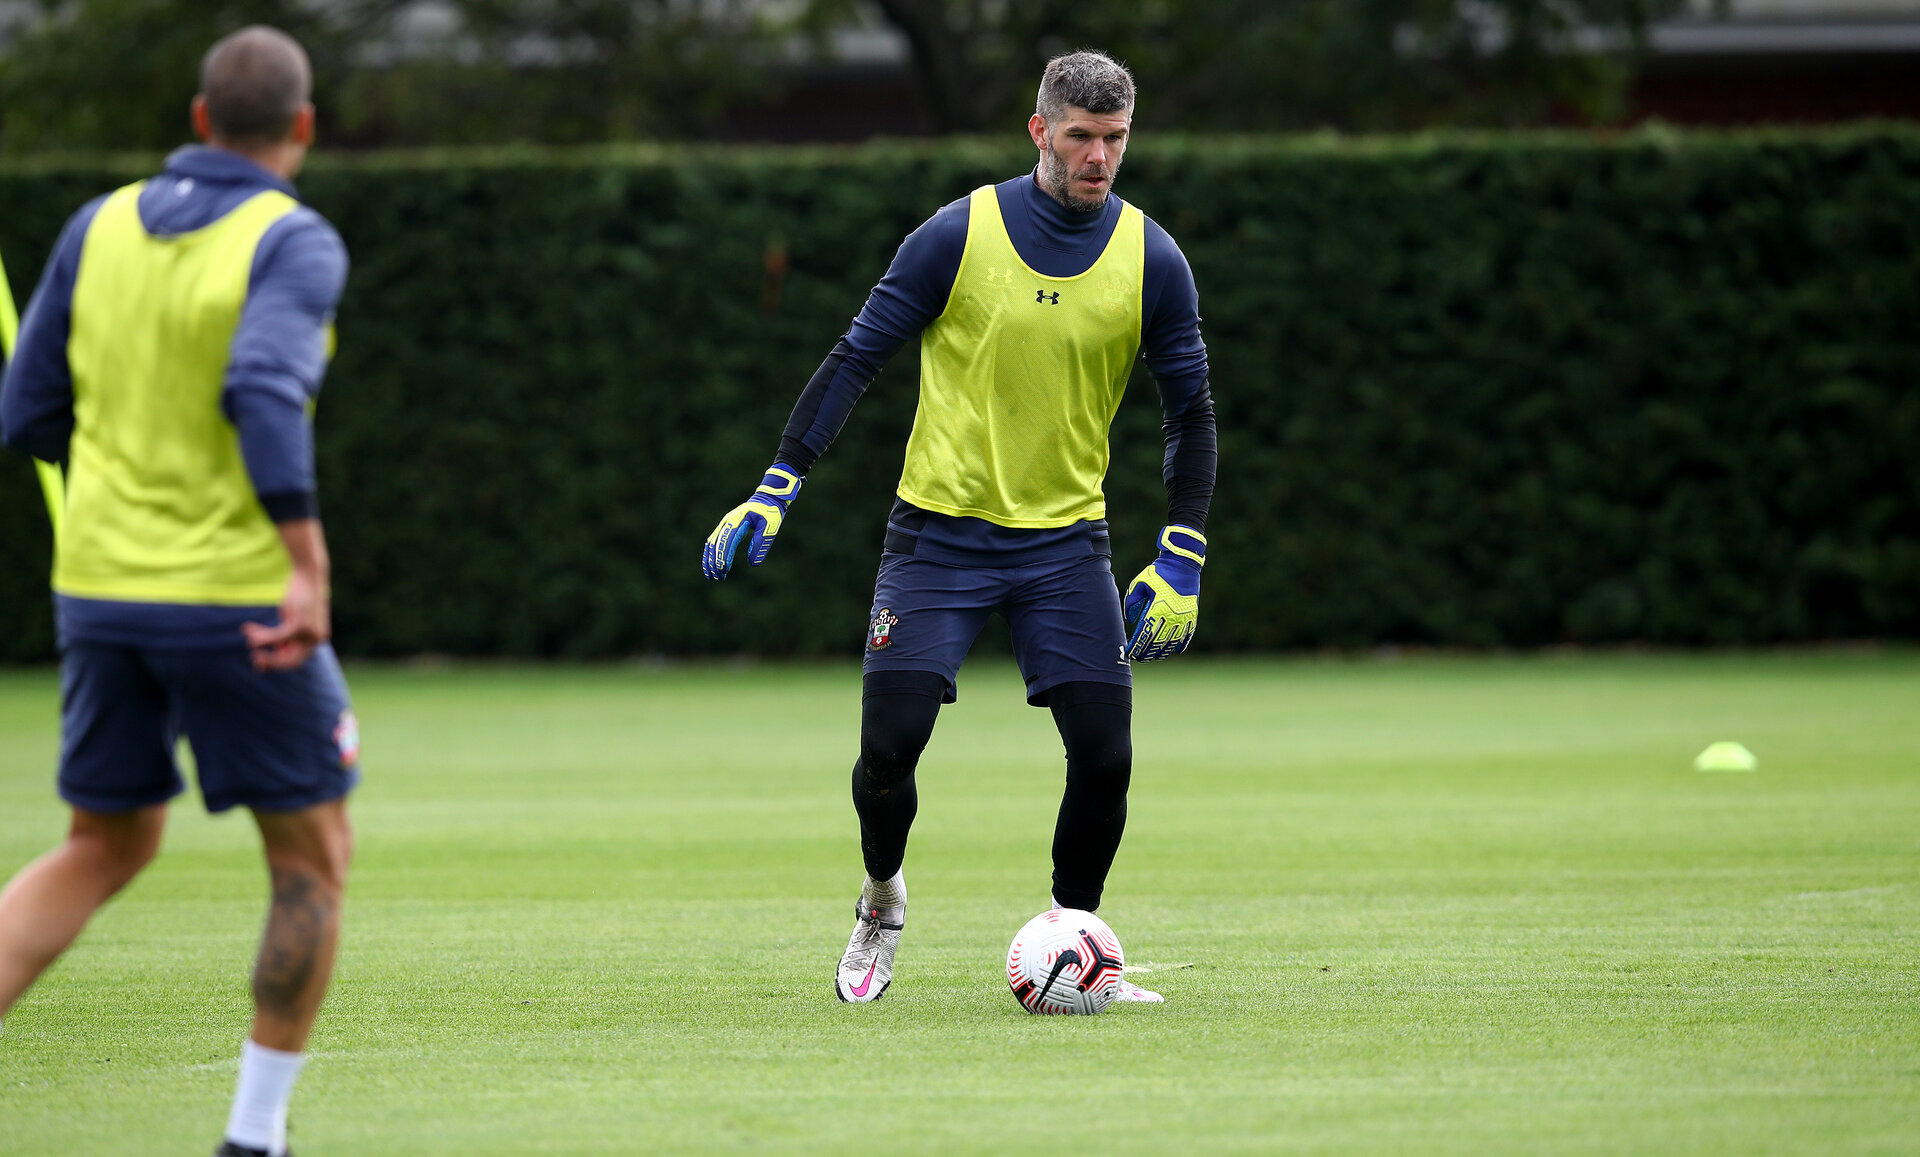 SOUTHAMPTON, ENGLAND - AUGUST 25: Fraser Forster during a Southampton FC training session at the Staplewood Campus on August 25, 2020 in Southampton, England. (Photo by Matt Watson/Southampton FC via Getty Images)